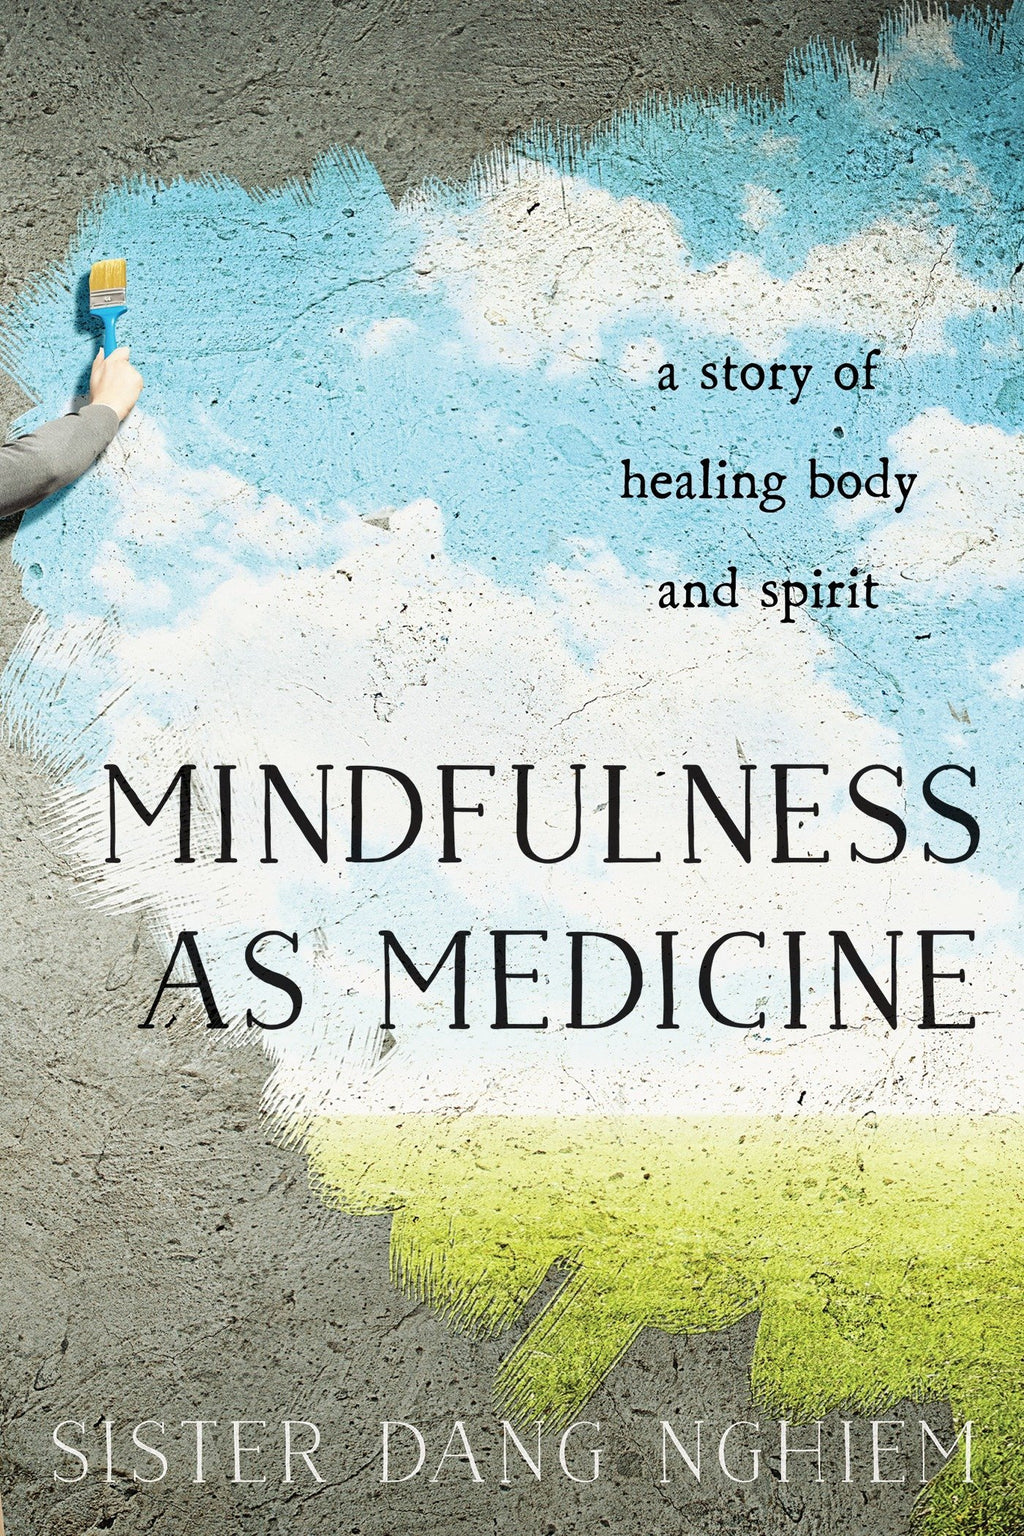 Mindfulness as Medicine by Sister Dang Nghiem